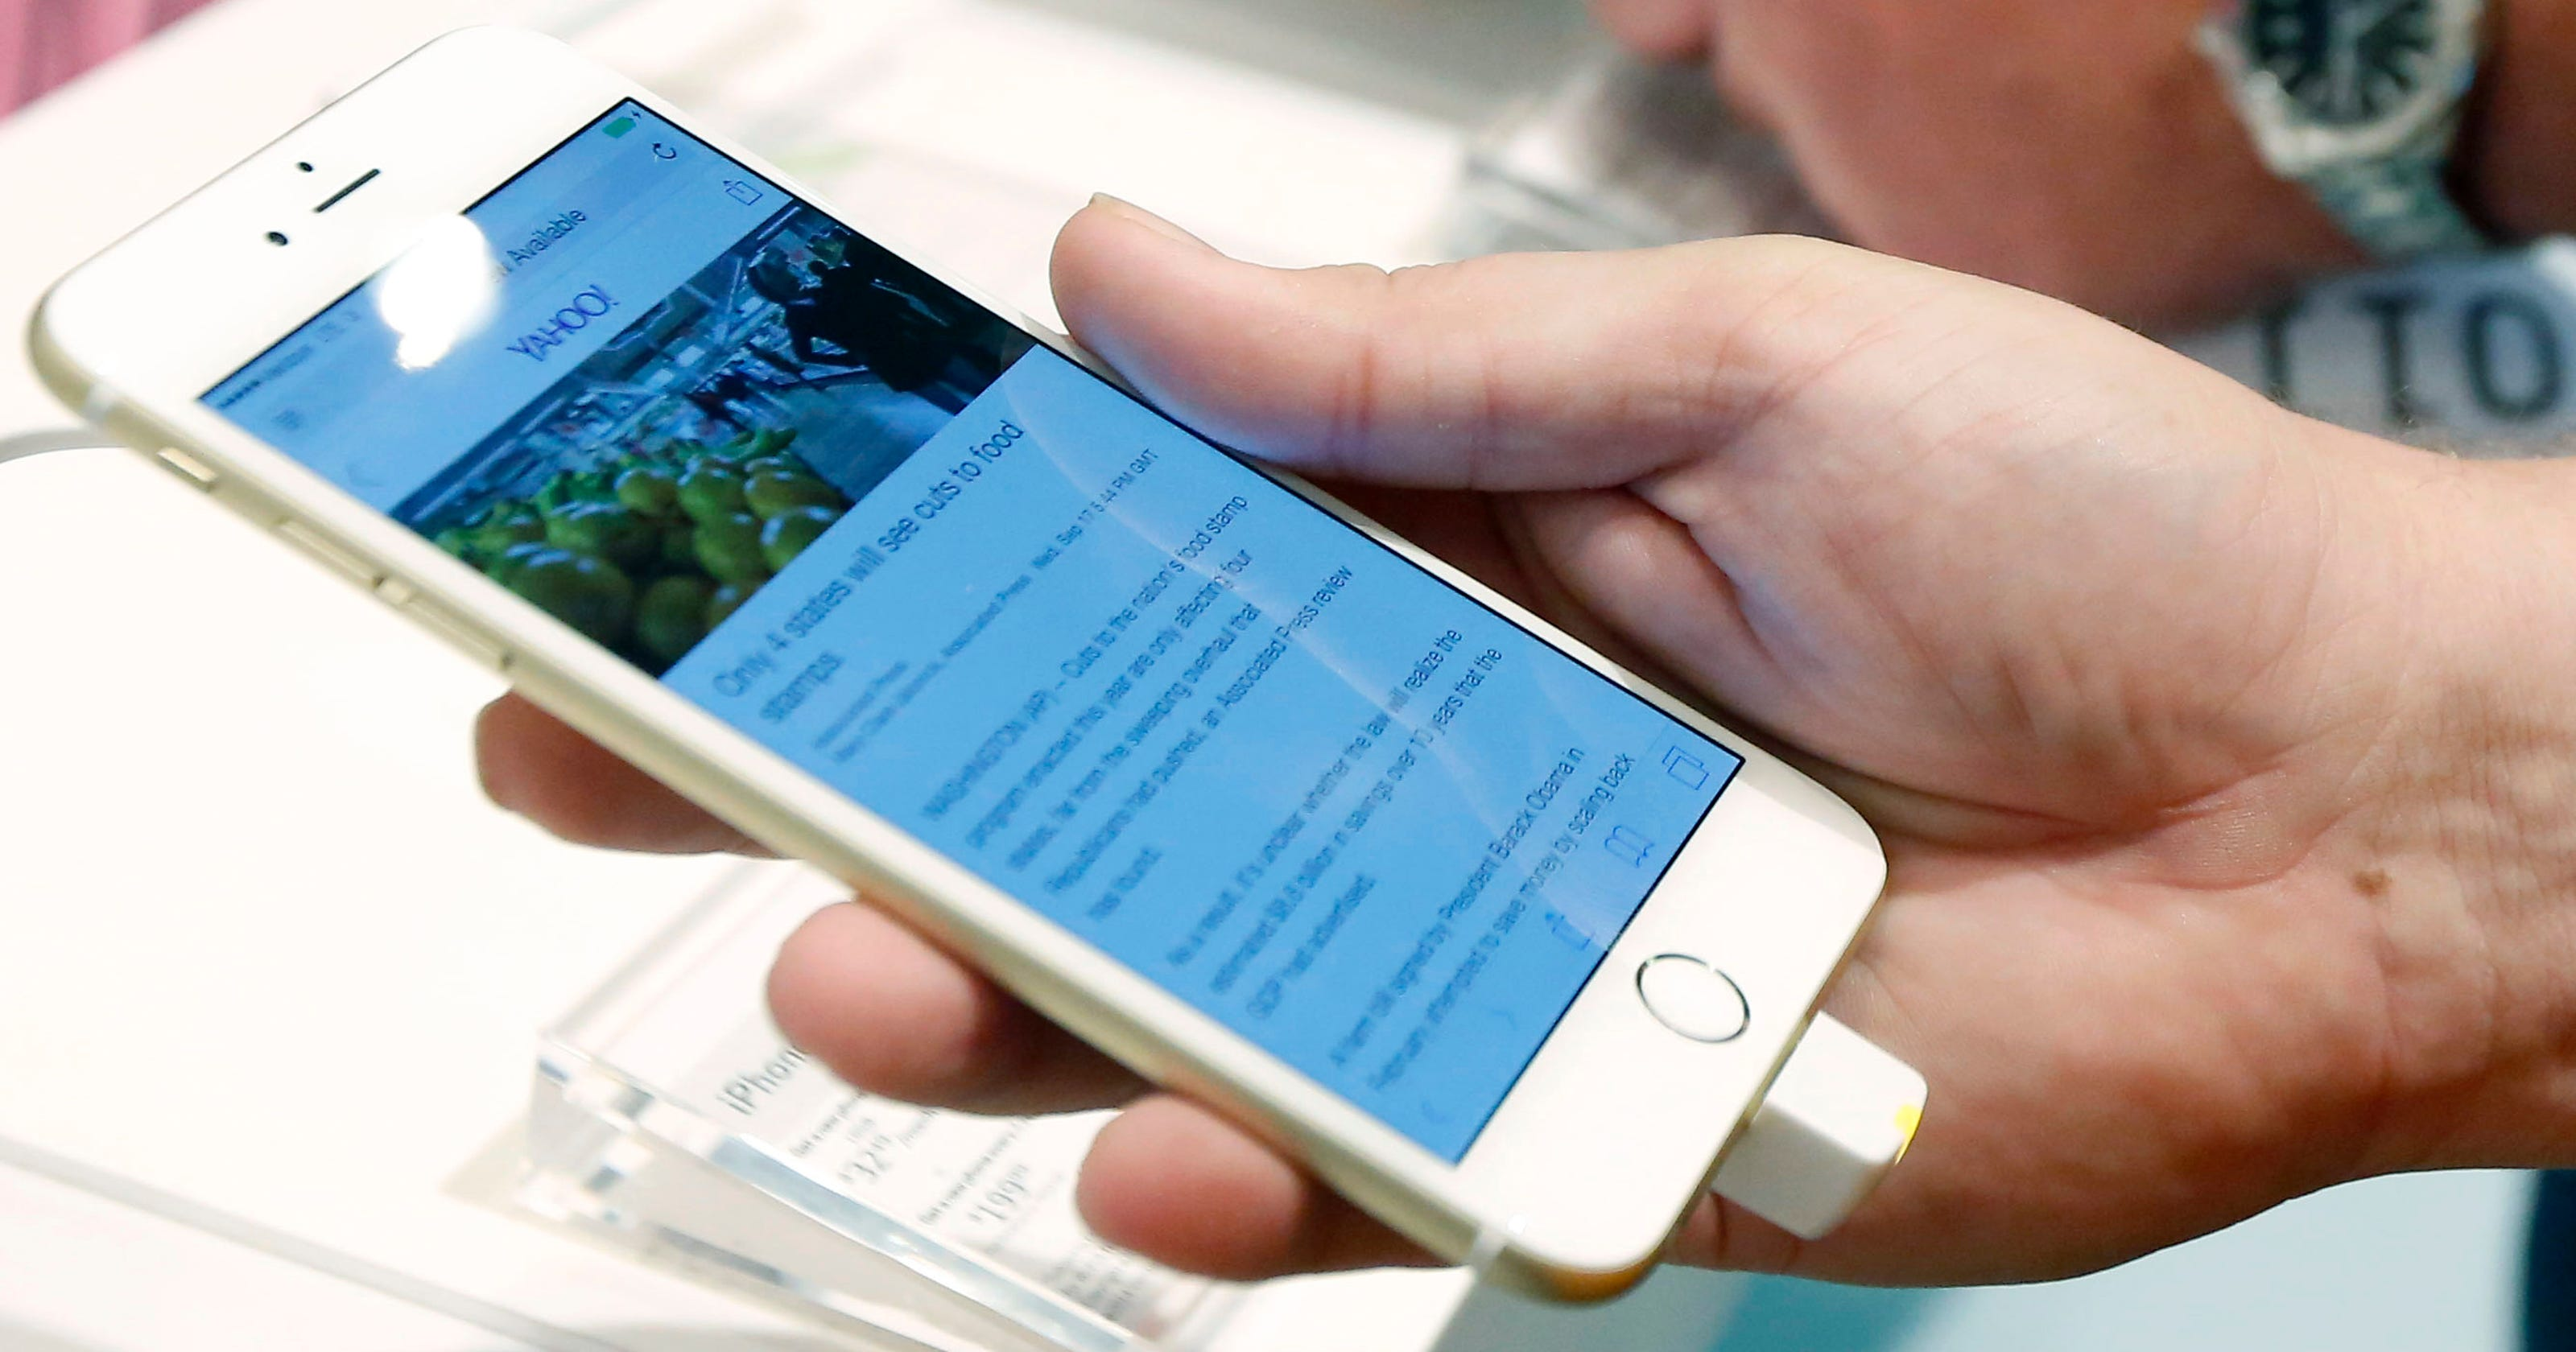 Lost your phone? Here's how to find it